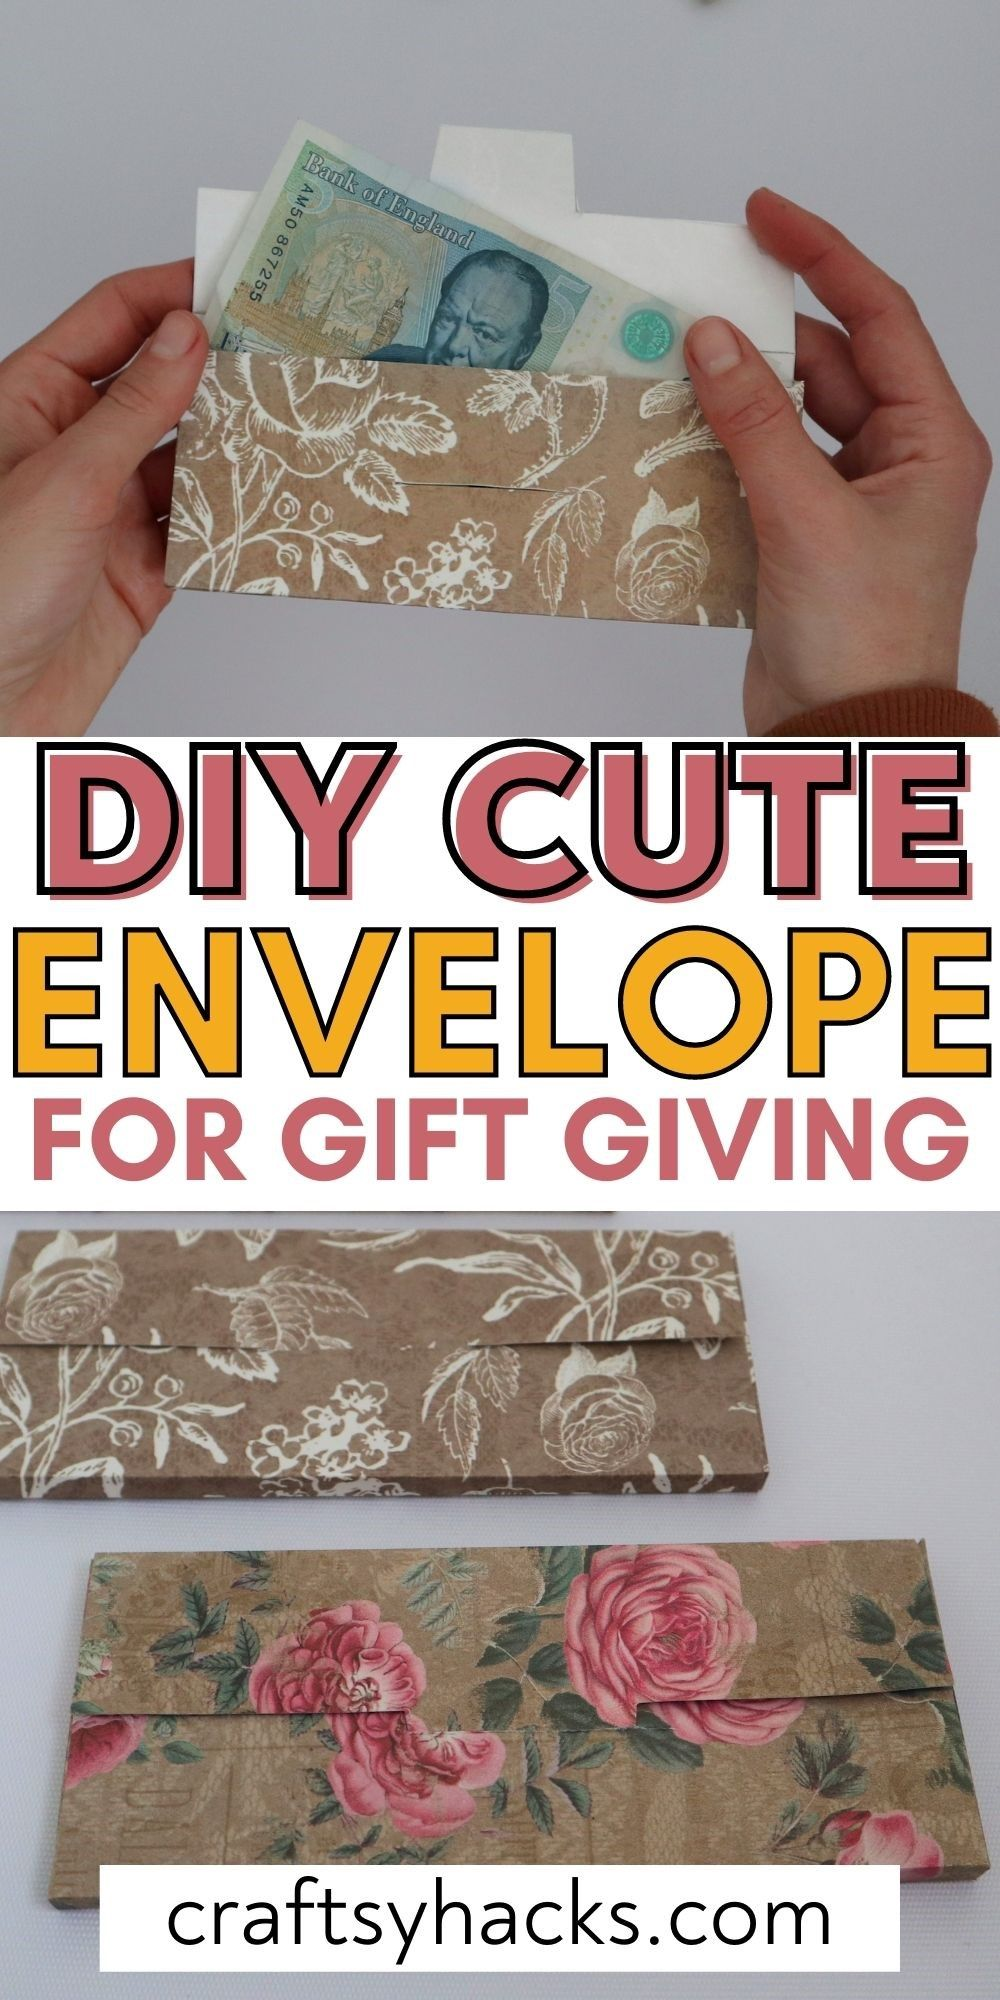 diy cute envelope for gift giving